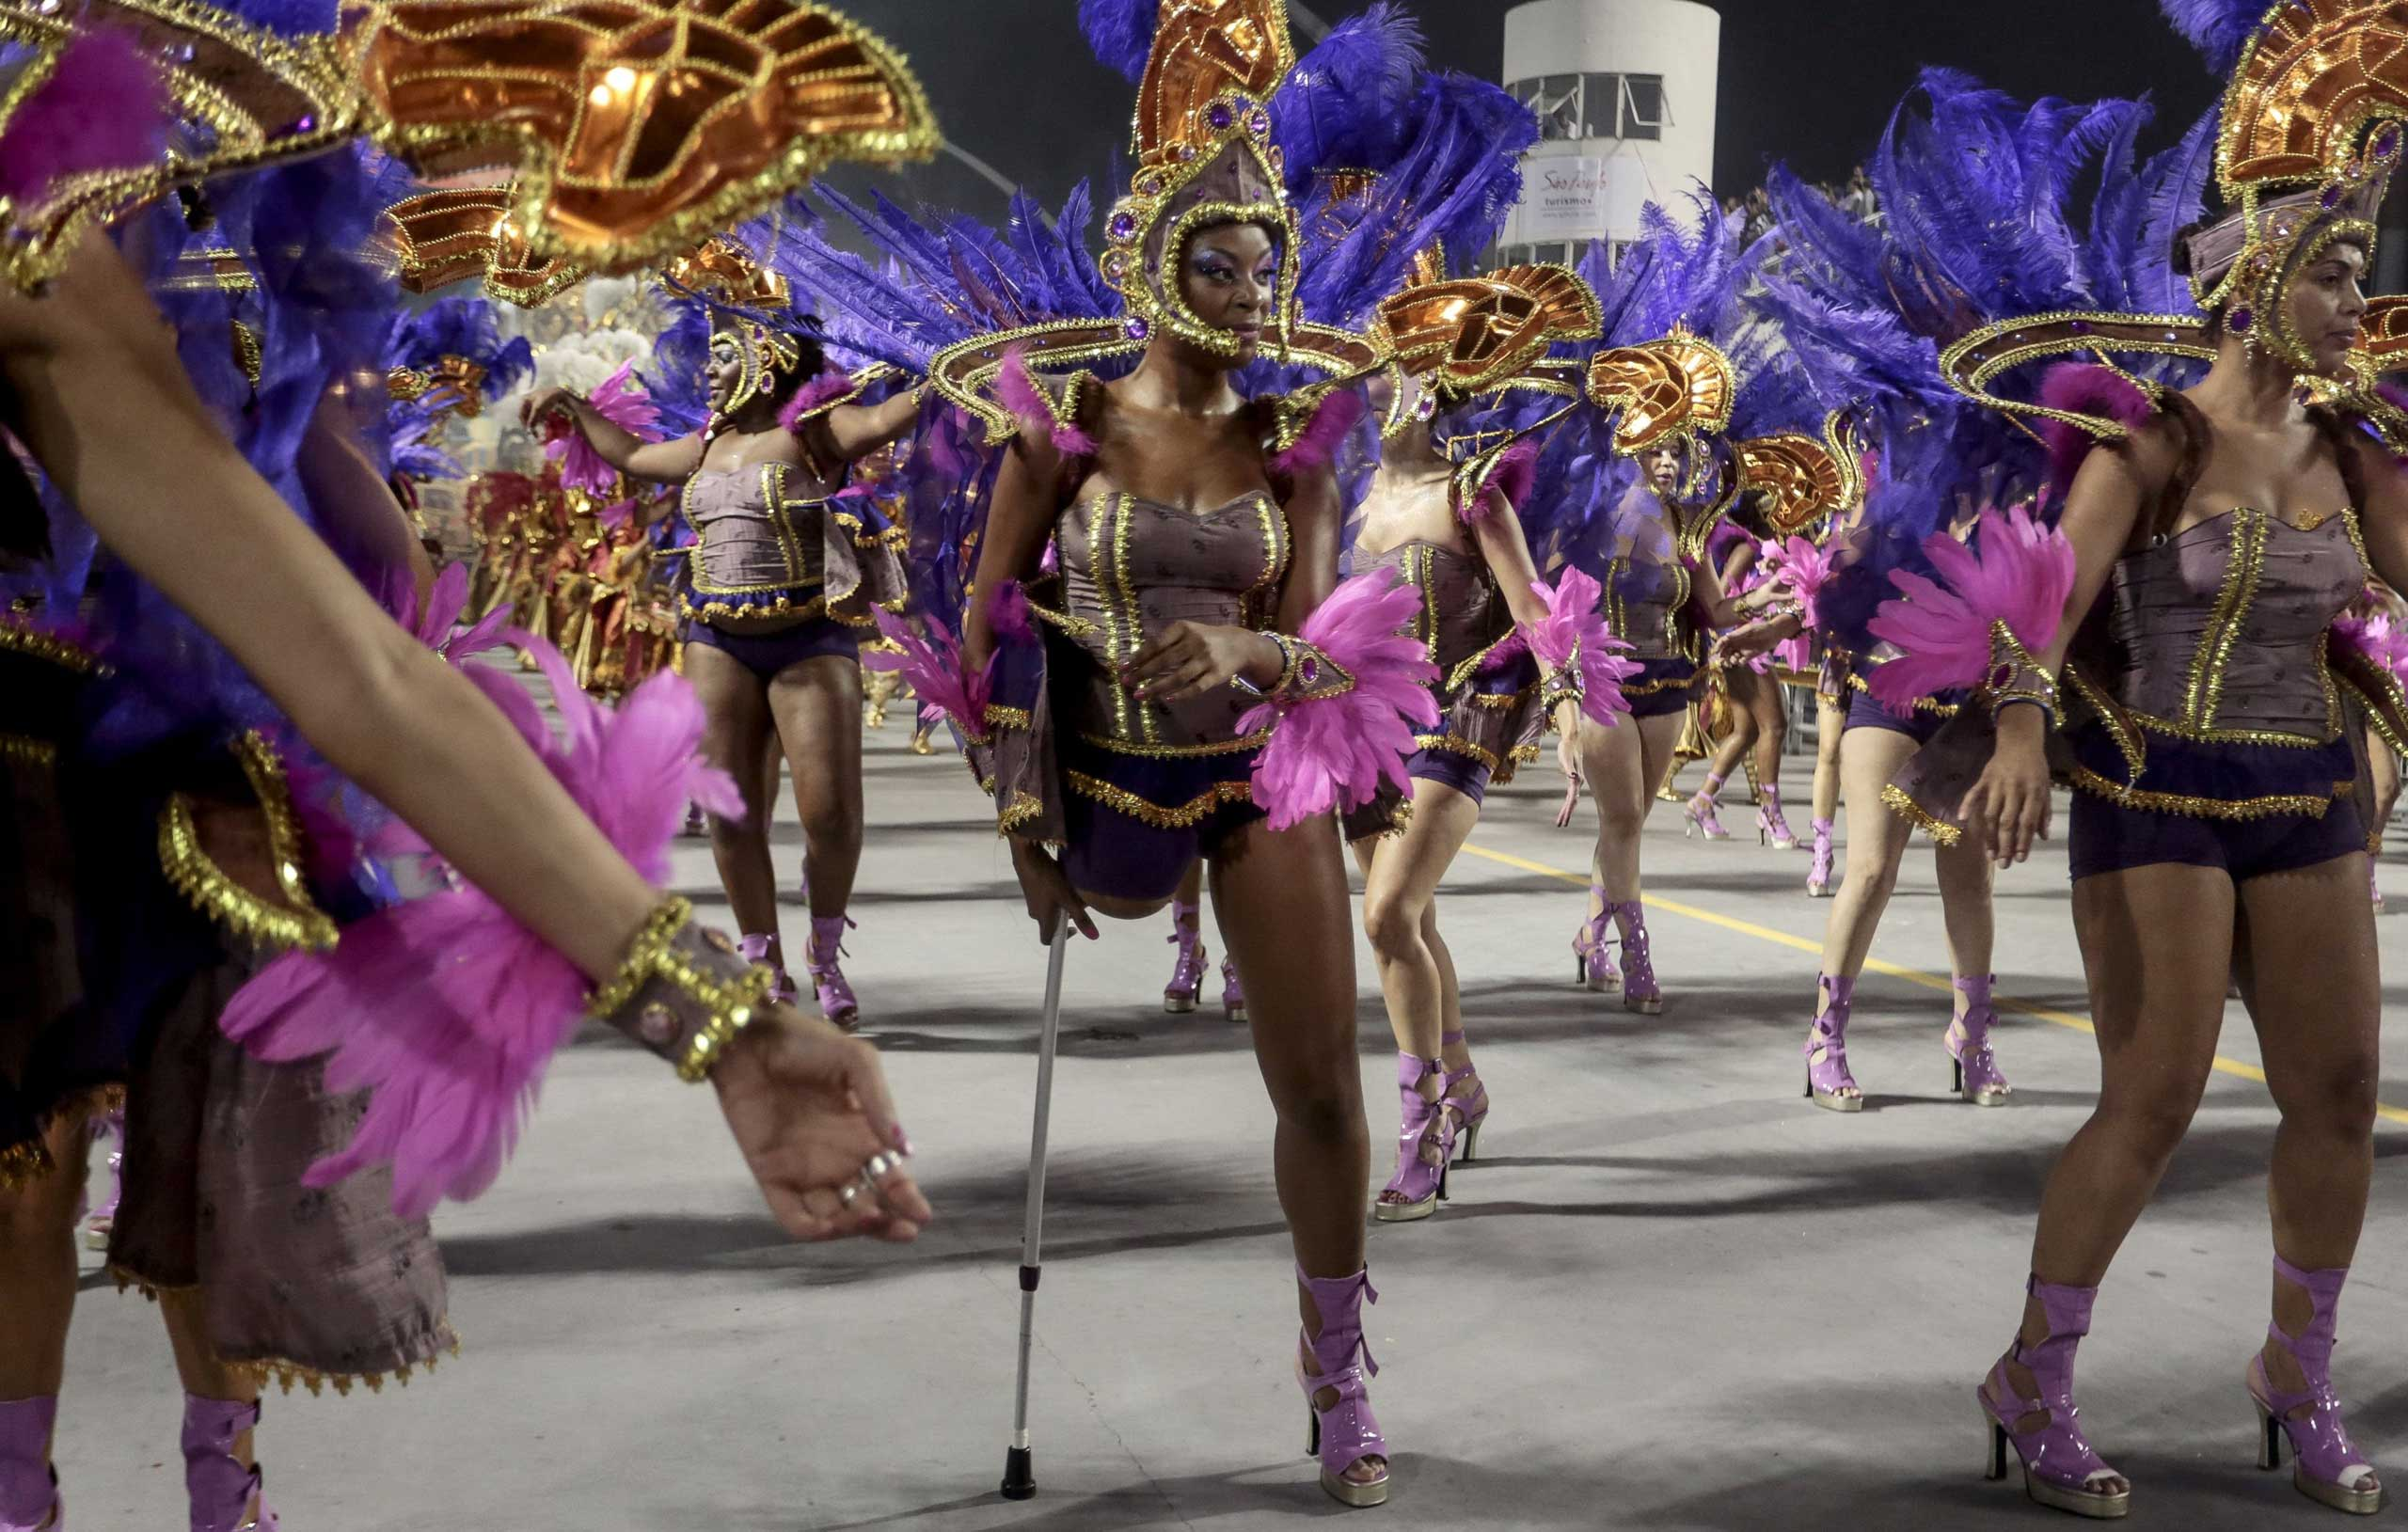 Revelers of the Nene de Vila Matilde samba school perform during the second night of carnival parade at the Sambadrome, Sao Paulo, March 1, 2014.